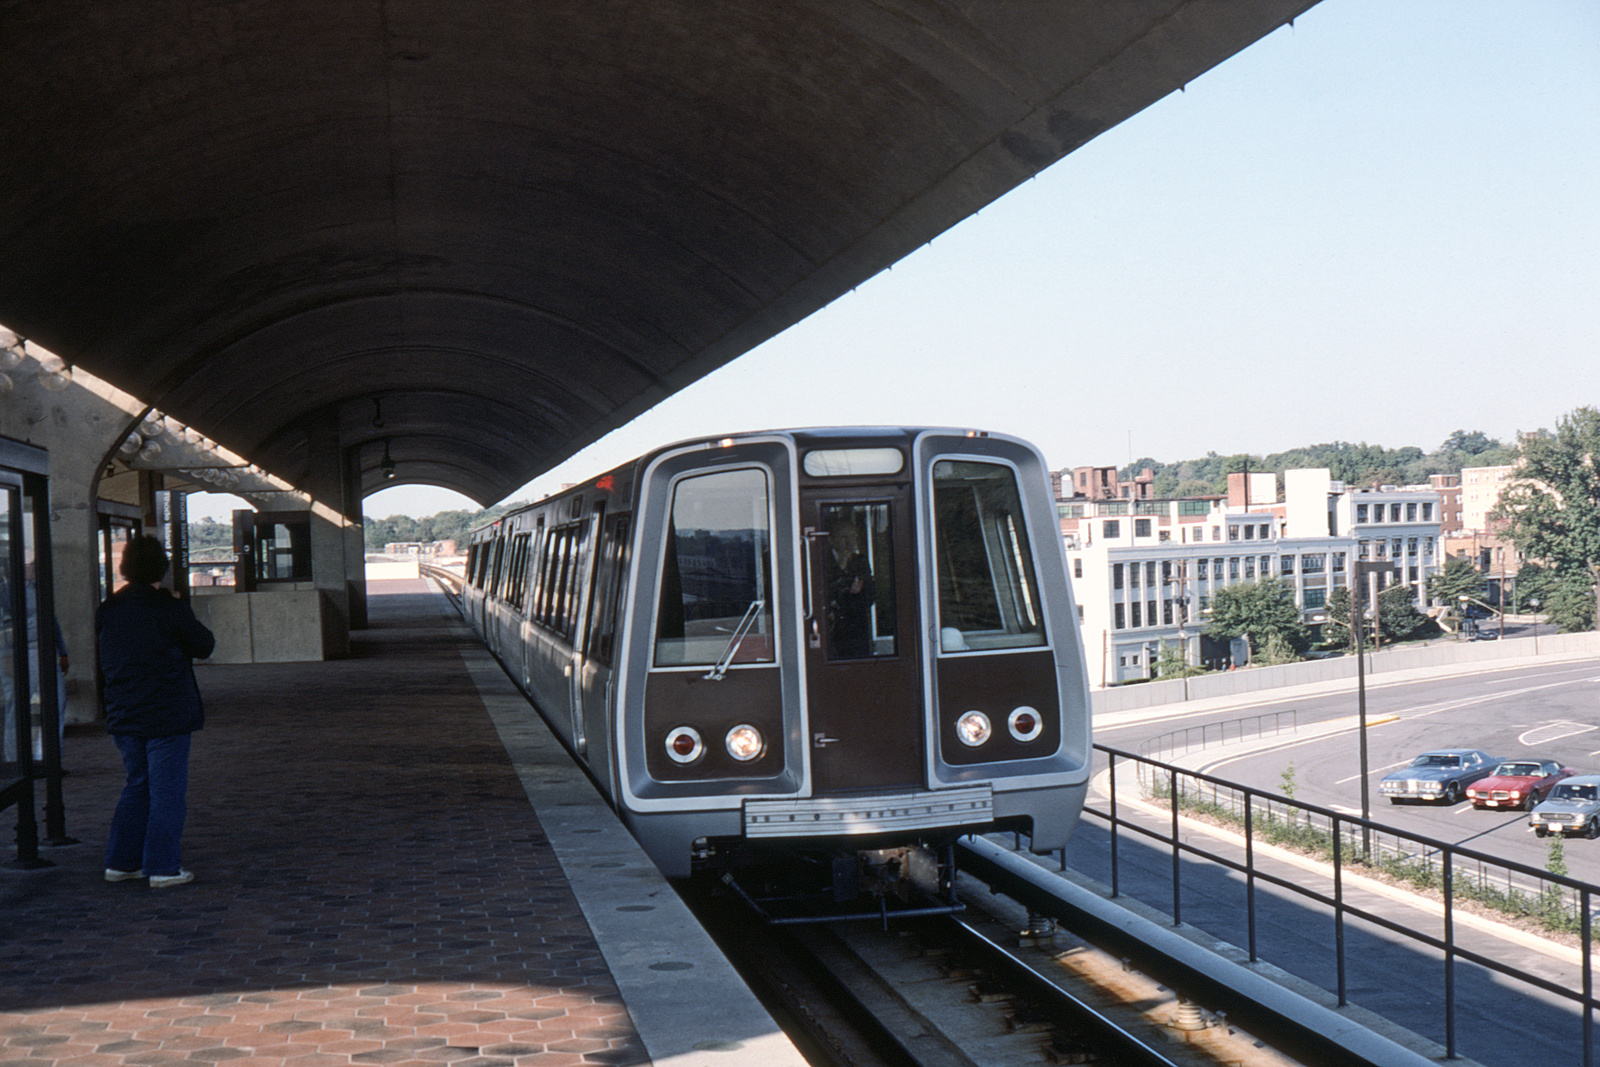 (356k, 1044x707)<br><b>Country:</b> United States<br><b>City:</b> Washington, D.C.<br><b>System:</b> Washington Metro (WMATA)<br><b>Line:</b> WMATA Red Line<br><b>Location:</b> Rhode Island Avenue <br><b>Collection of:</b> David Pirmann<br><b>Date:</b> 4/1976<br><b>Viewed (this week/total):</b> 26 / 5673